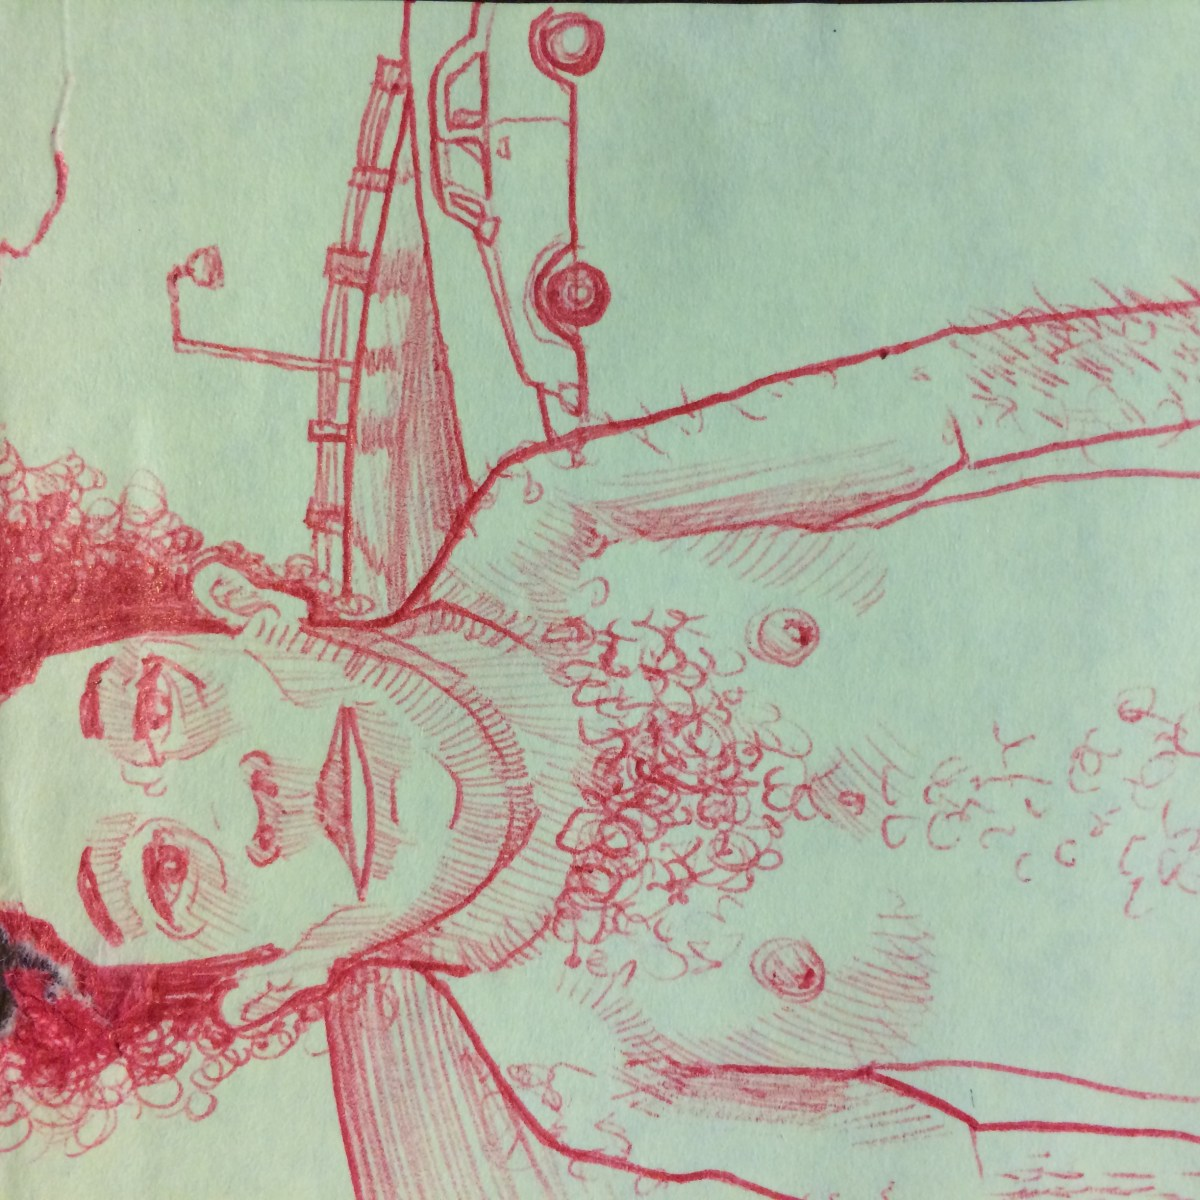 drawing of shirtless on post-it note with red pen